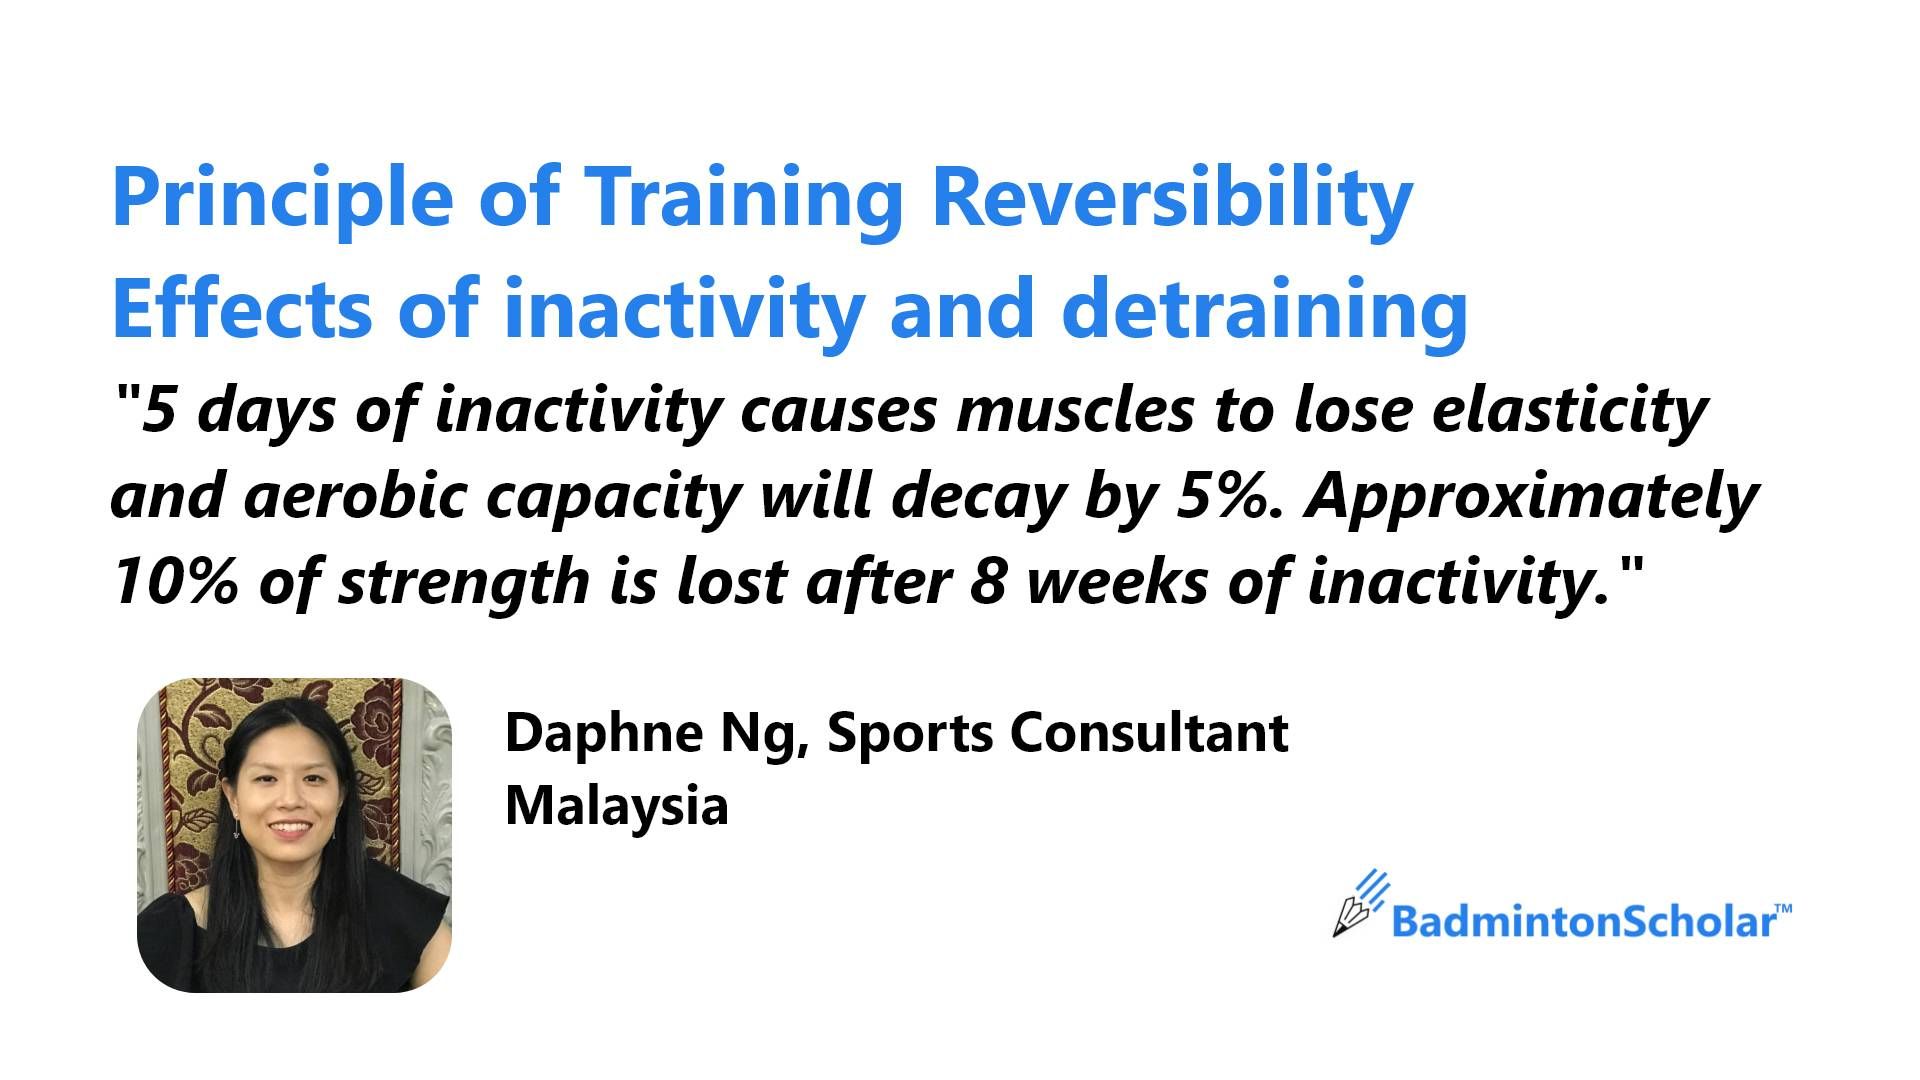 Principle of Training Reversibility, Effects of inactivity and detraining